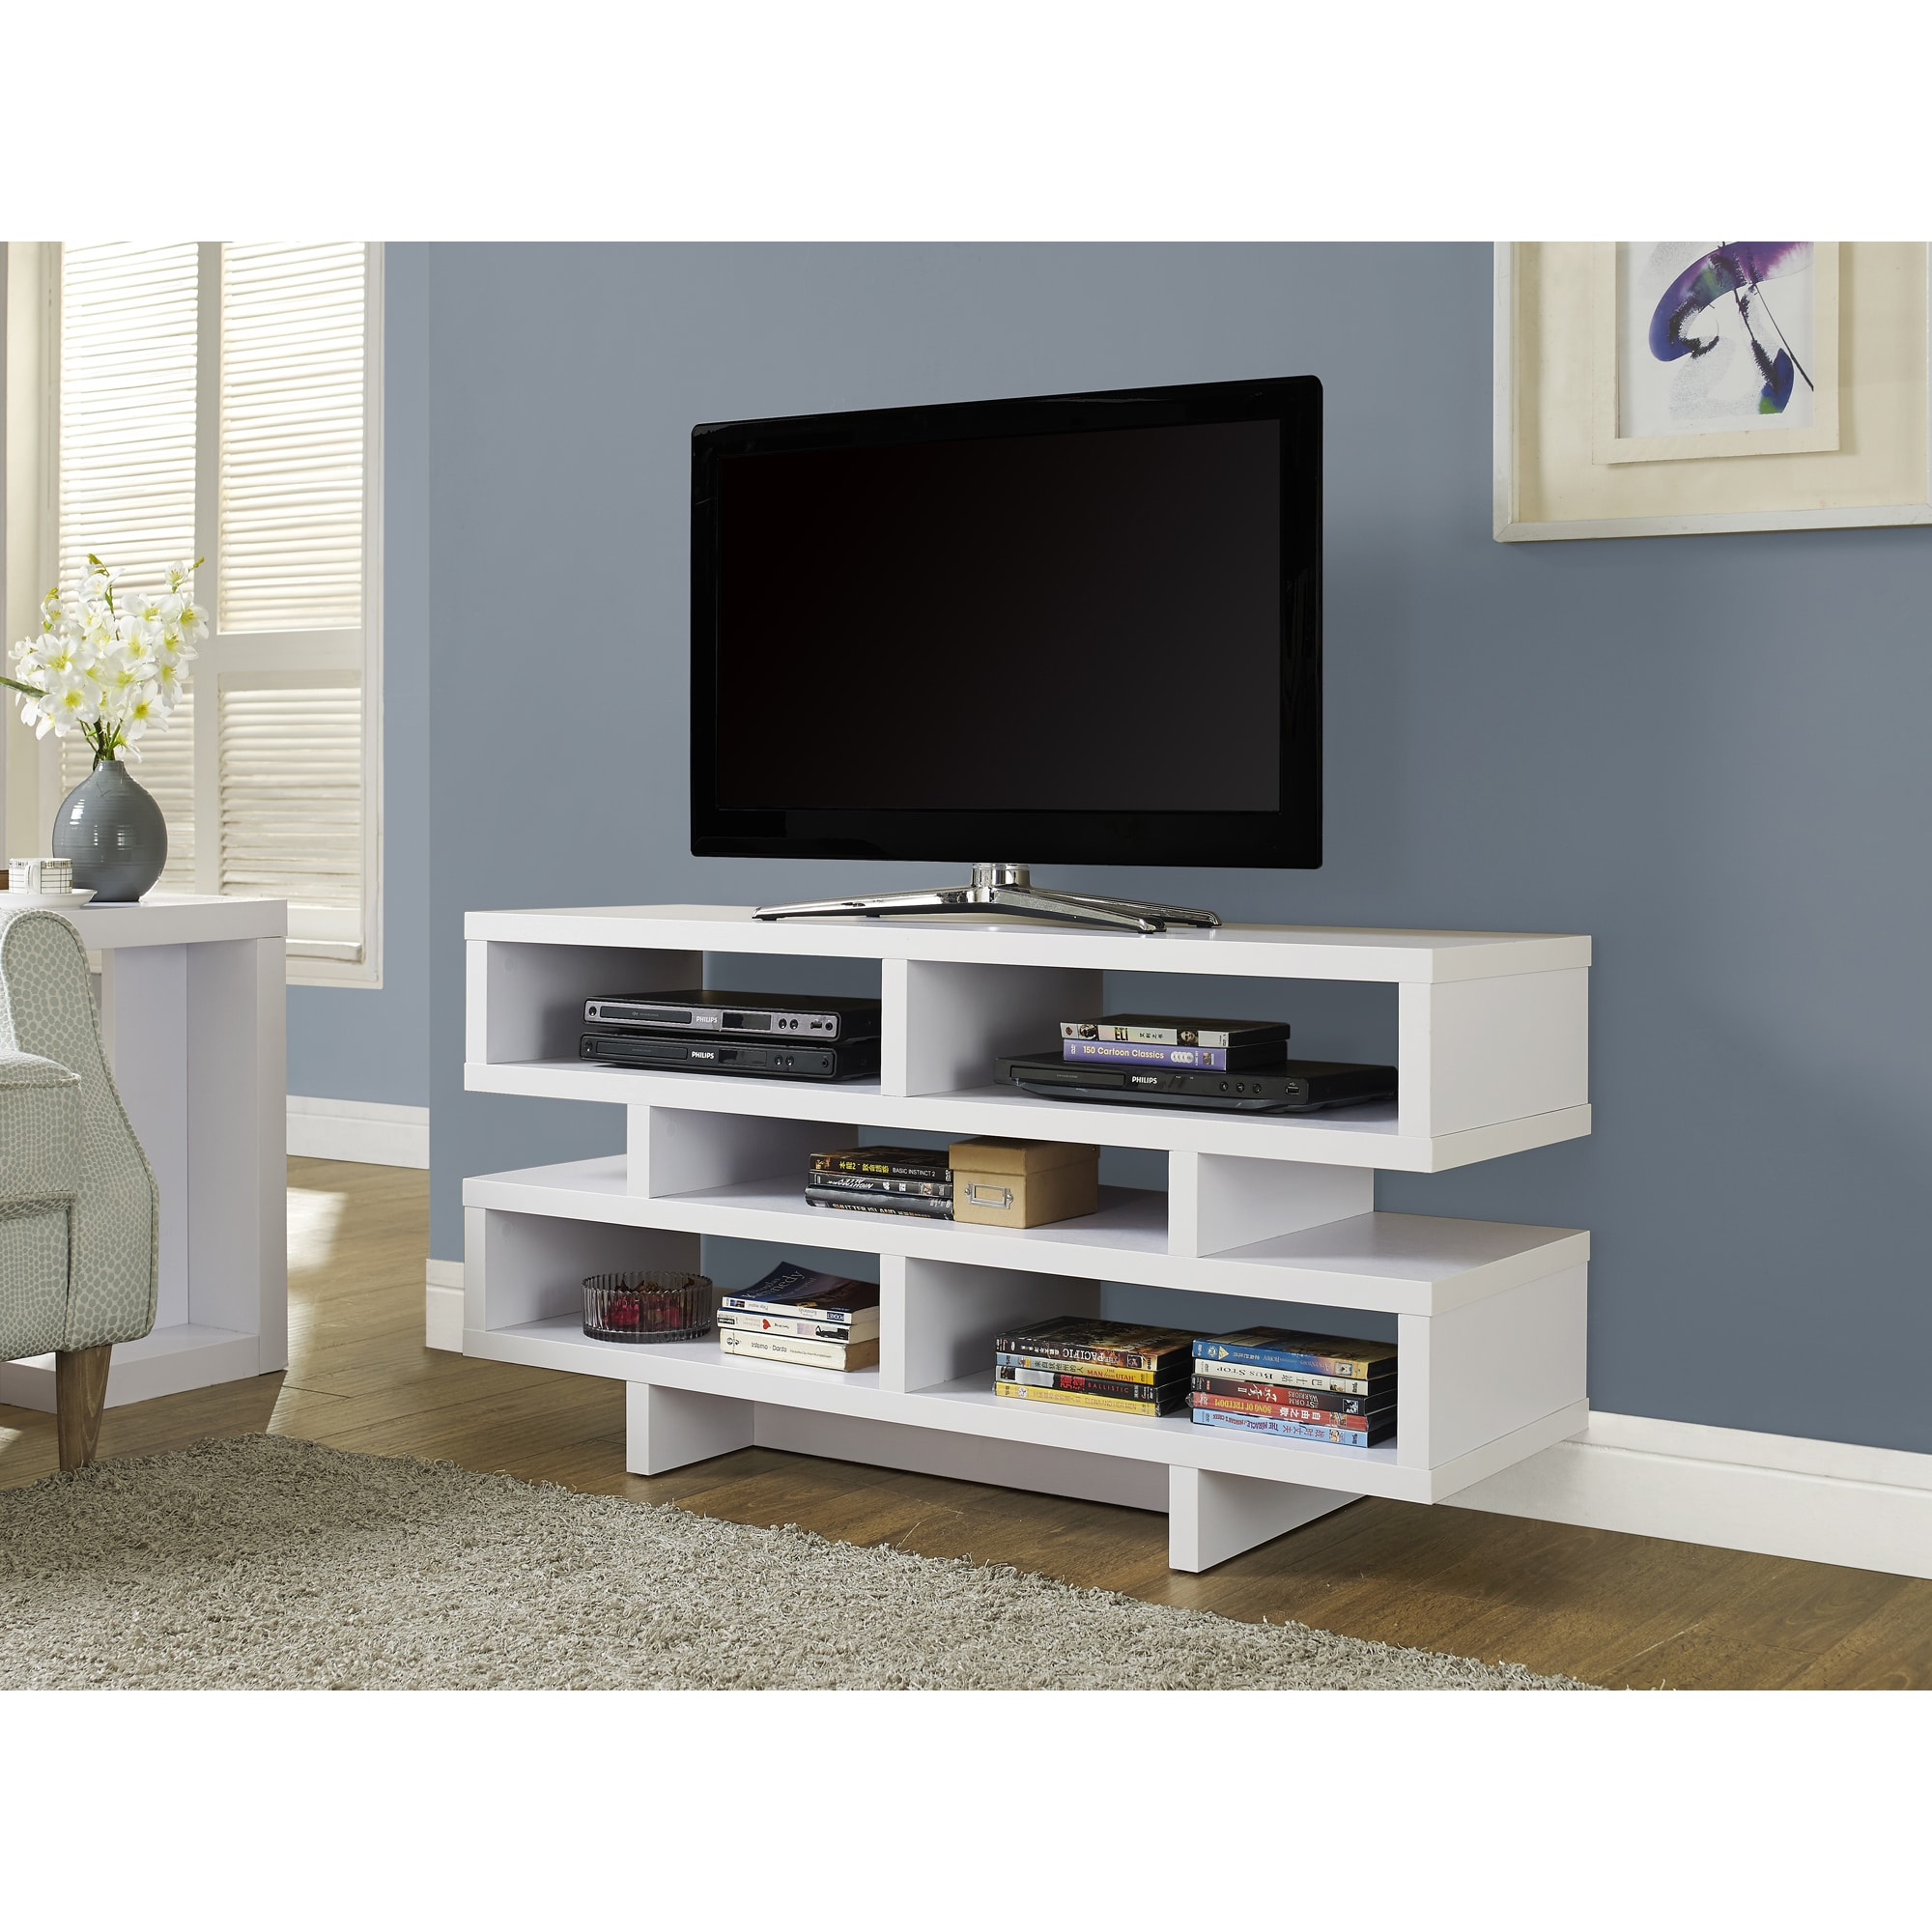 Shop 48 inch White Hollow core TV Console